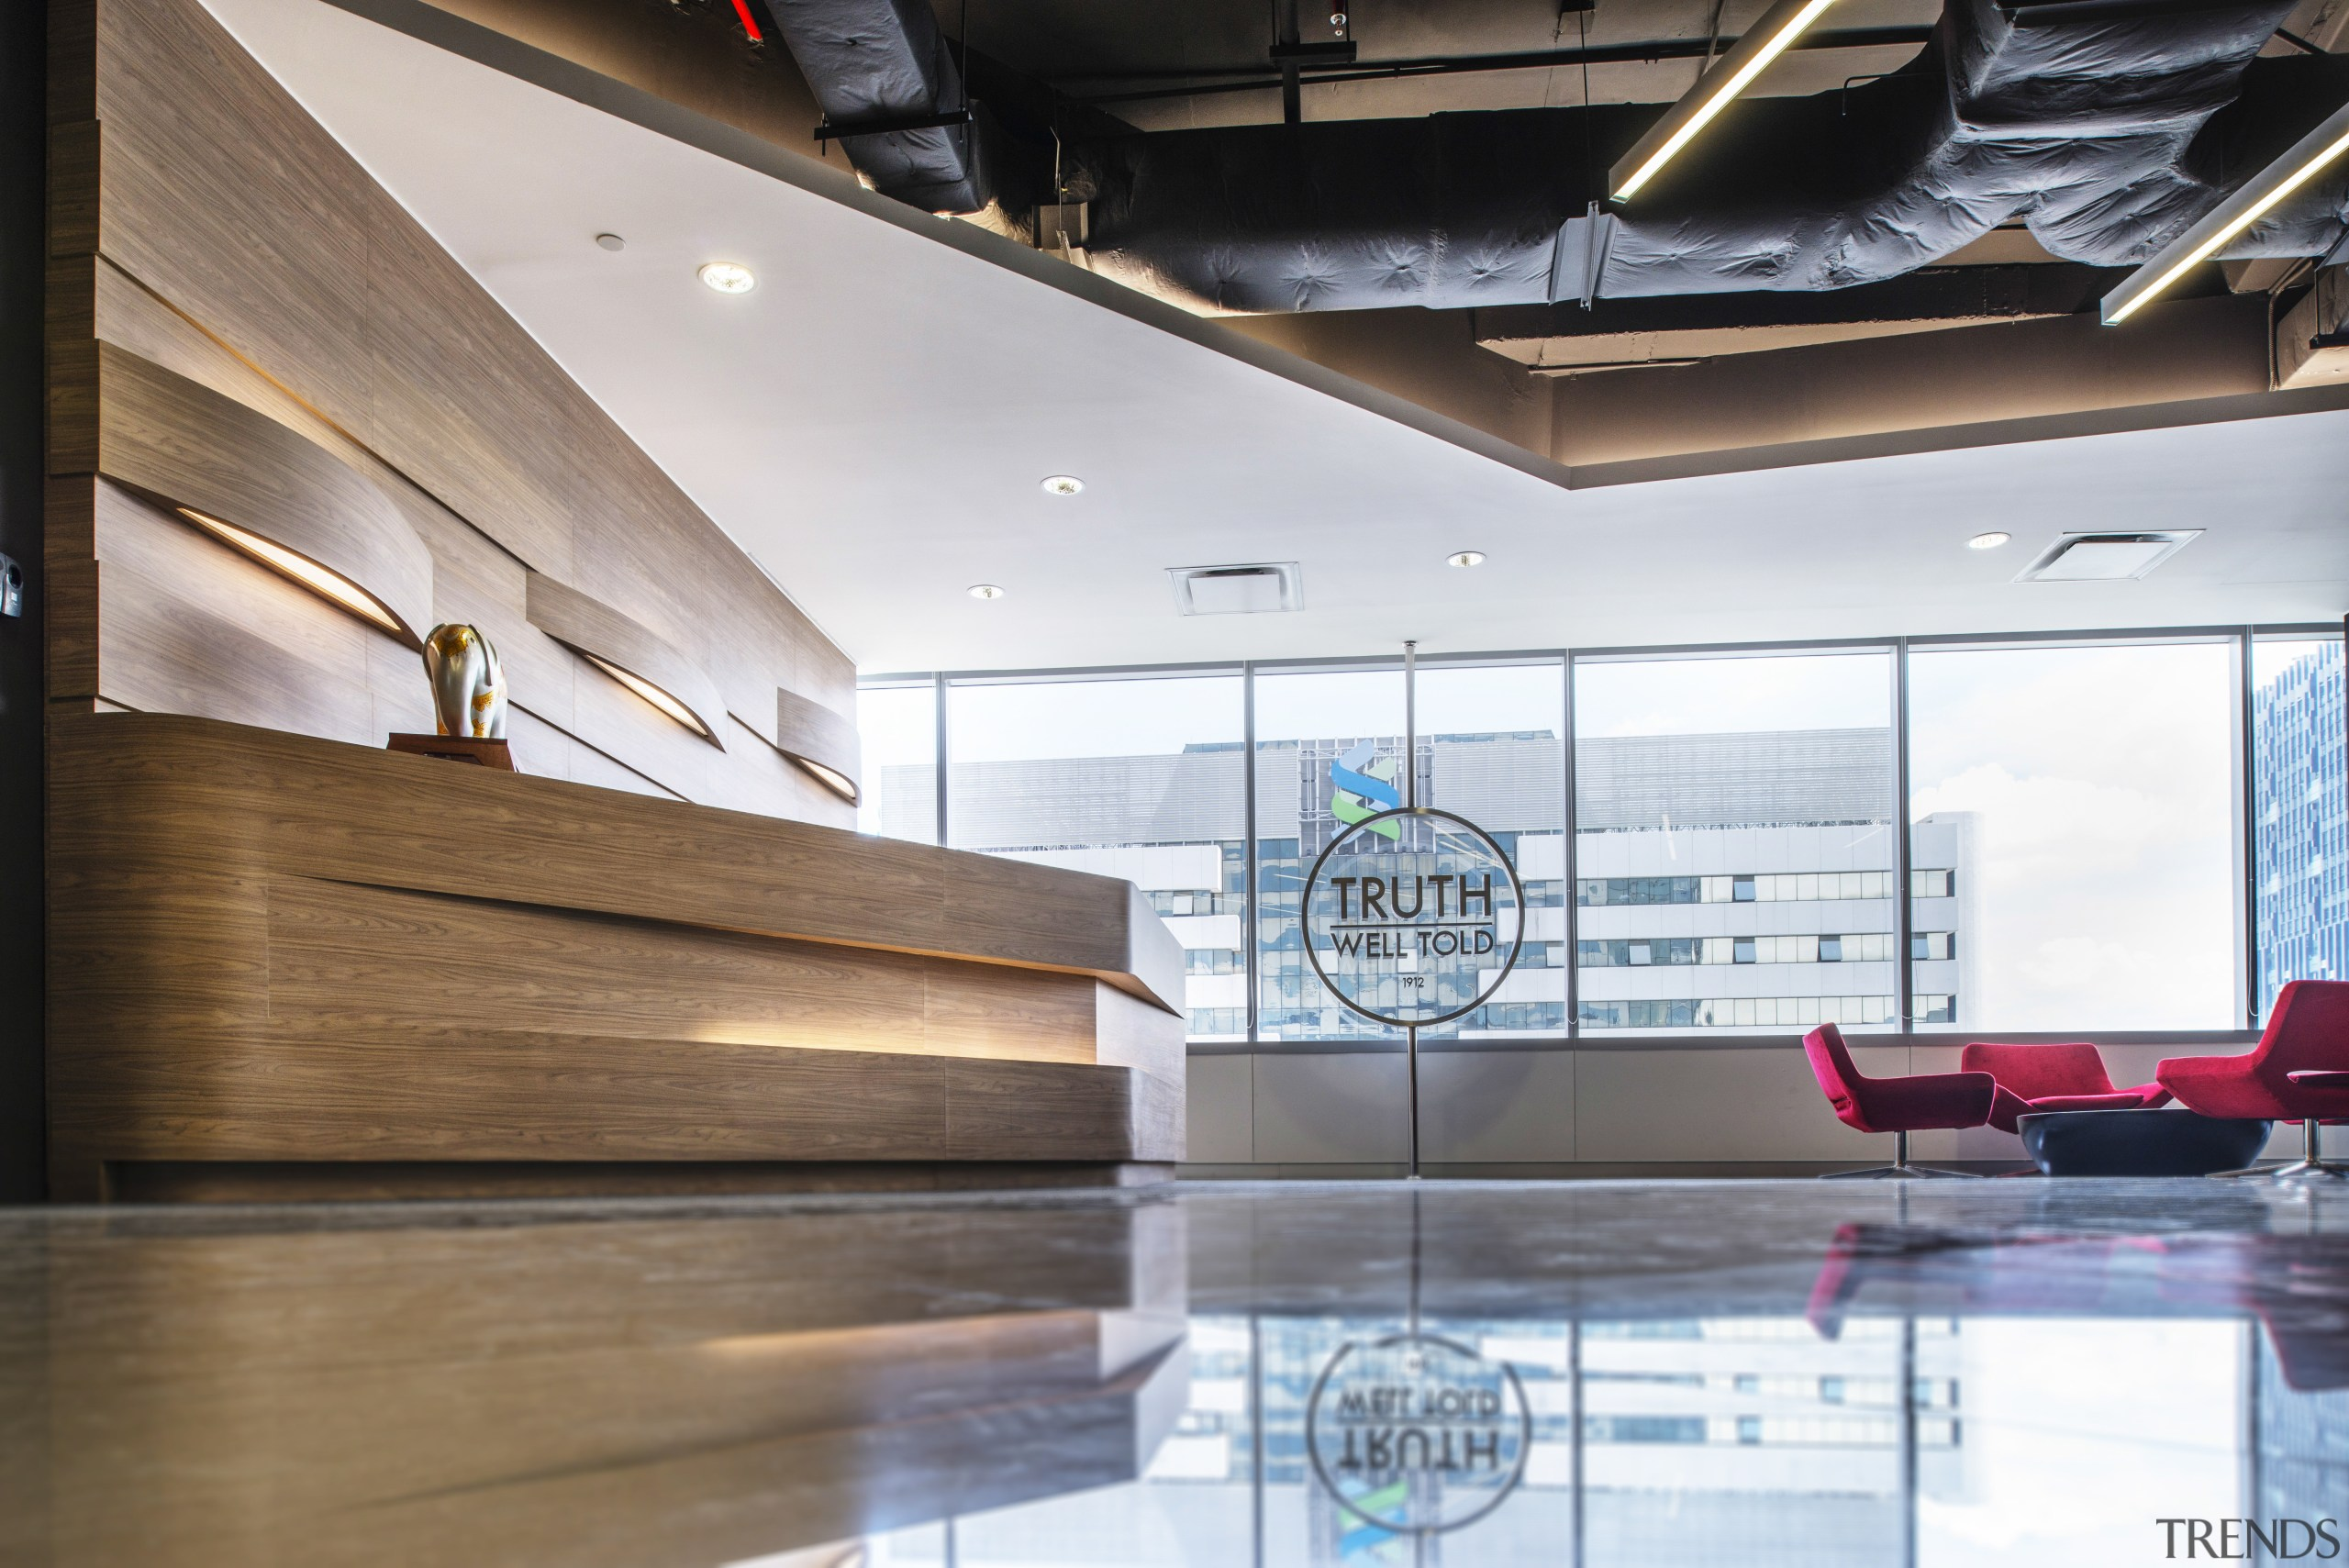 Selected areas of the McCann Worldgroup office fit-out, architecture, ceiling, daylighting, floor, interior design, lobby, white